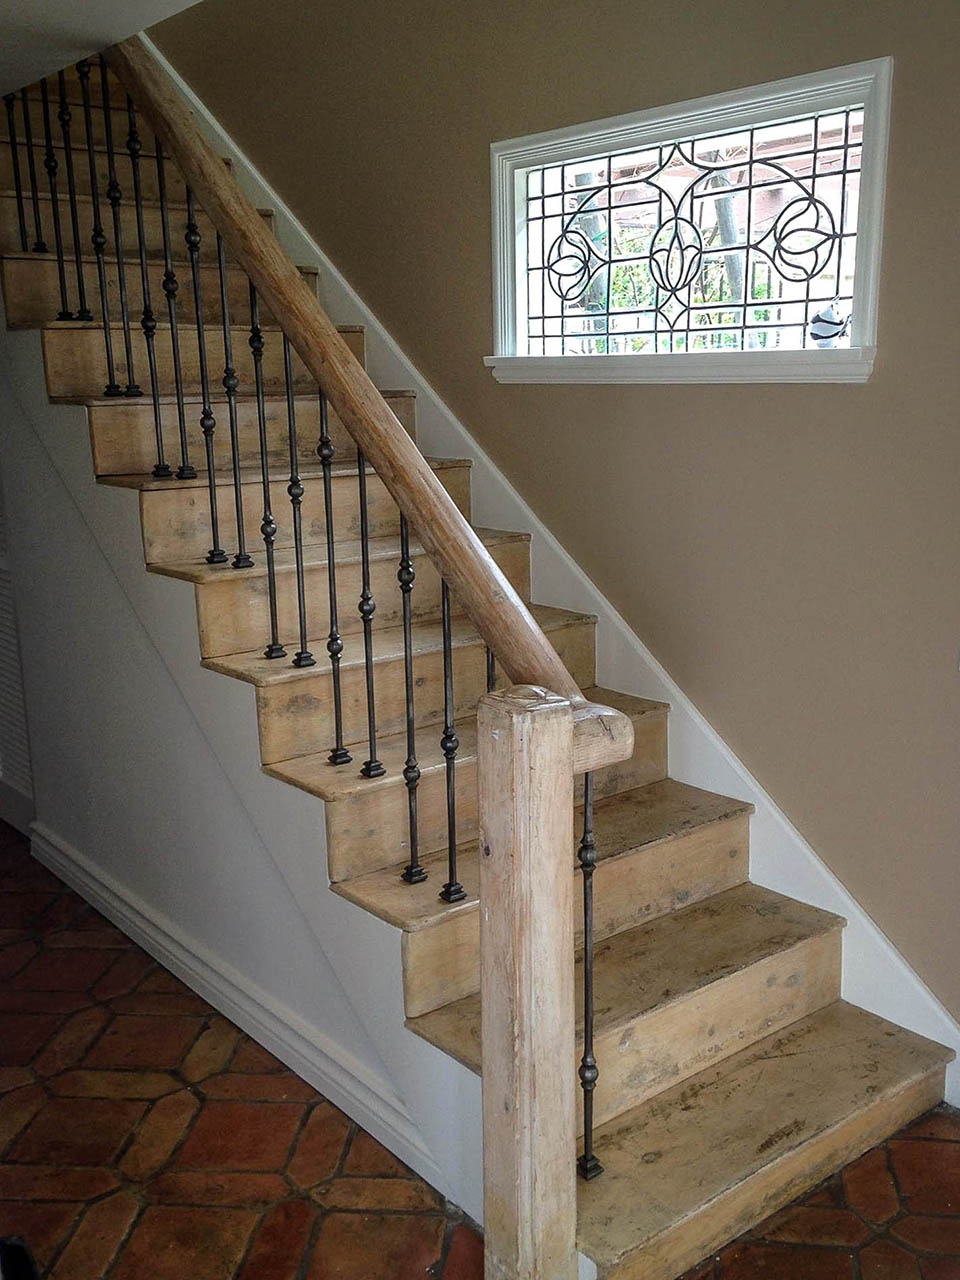 Southwestern Wrought Iron Handrail